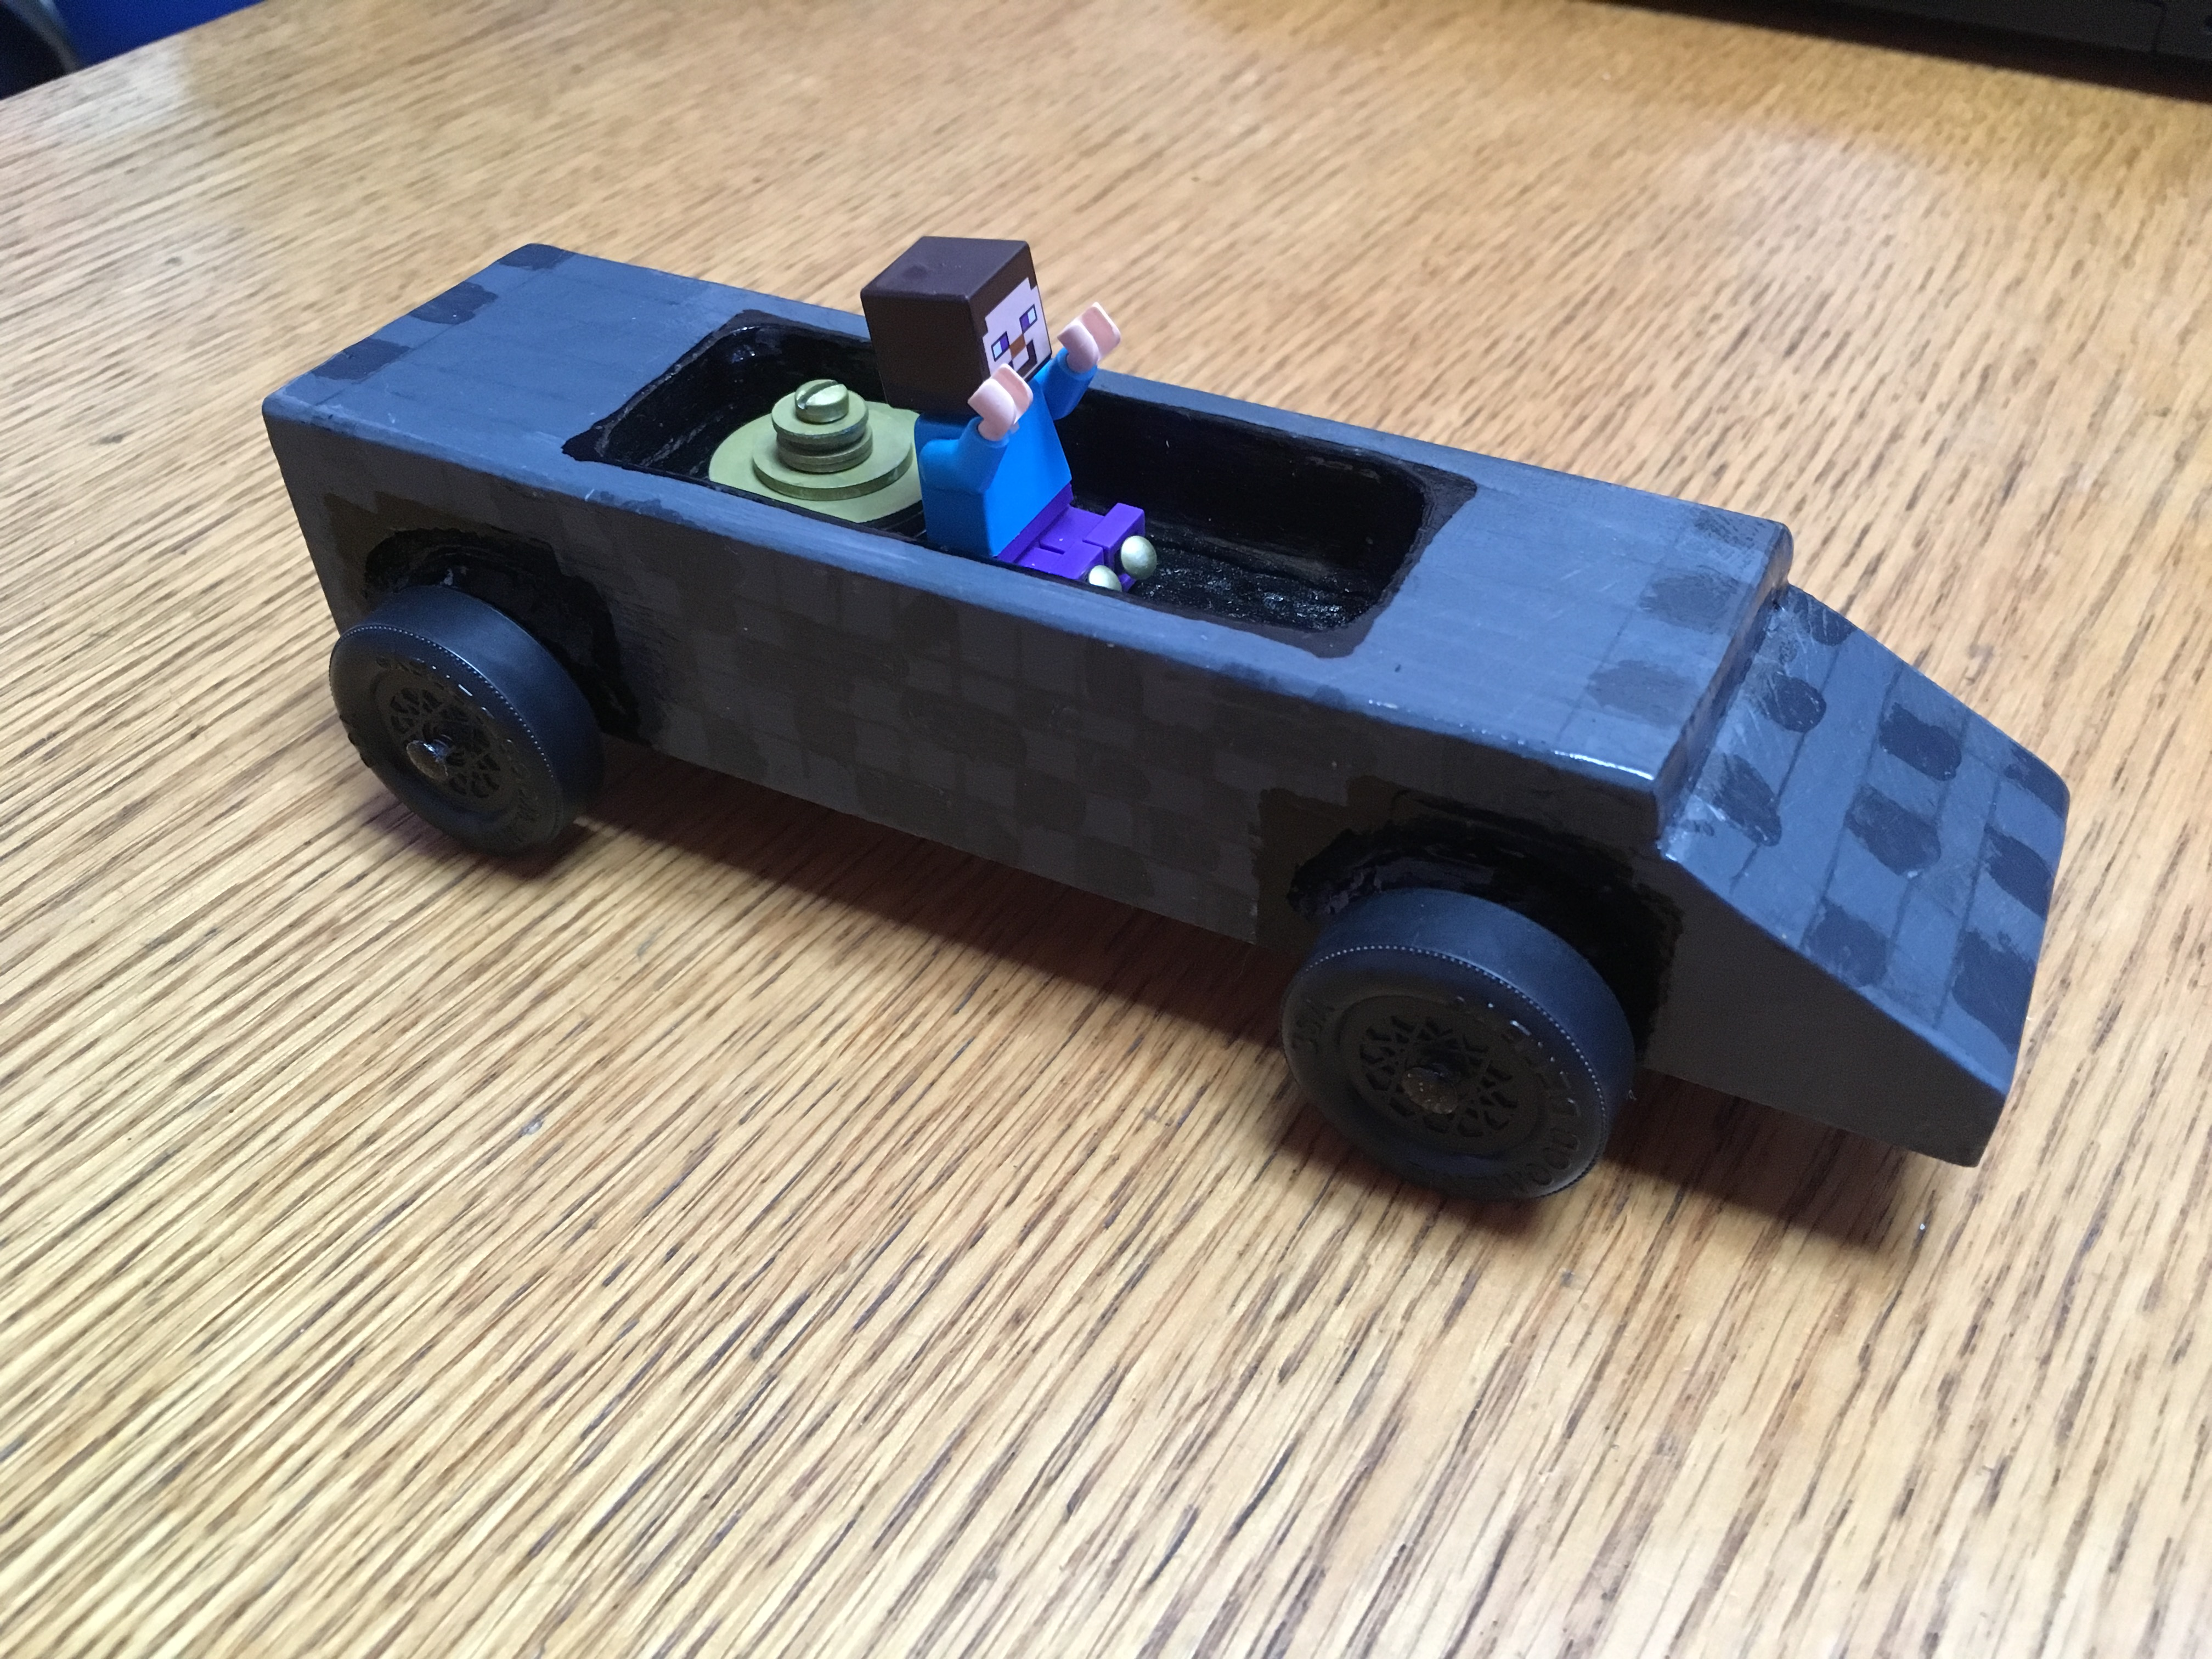 The Minecart Racer